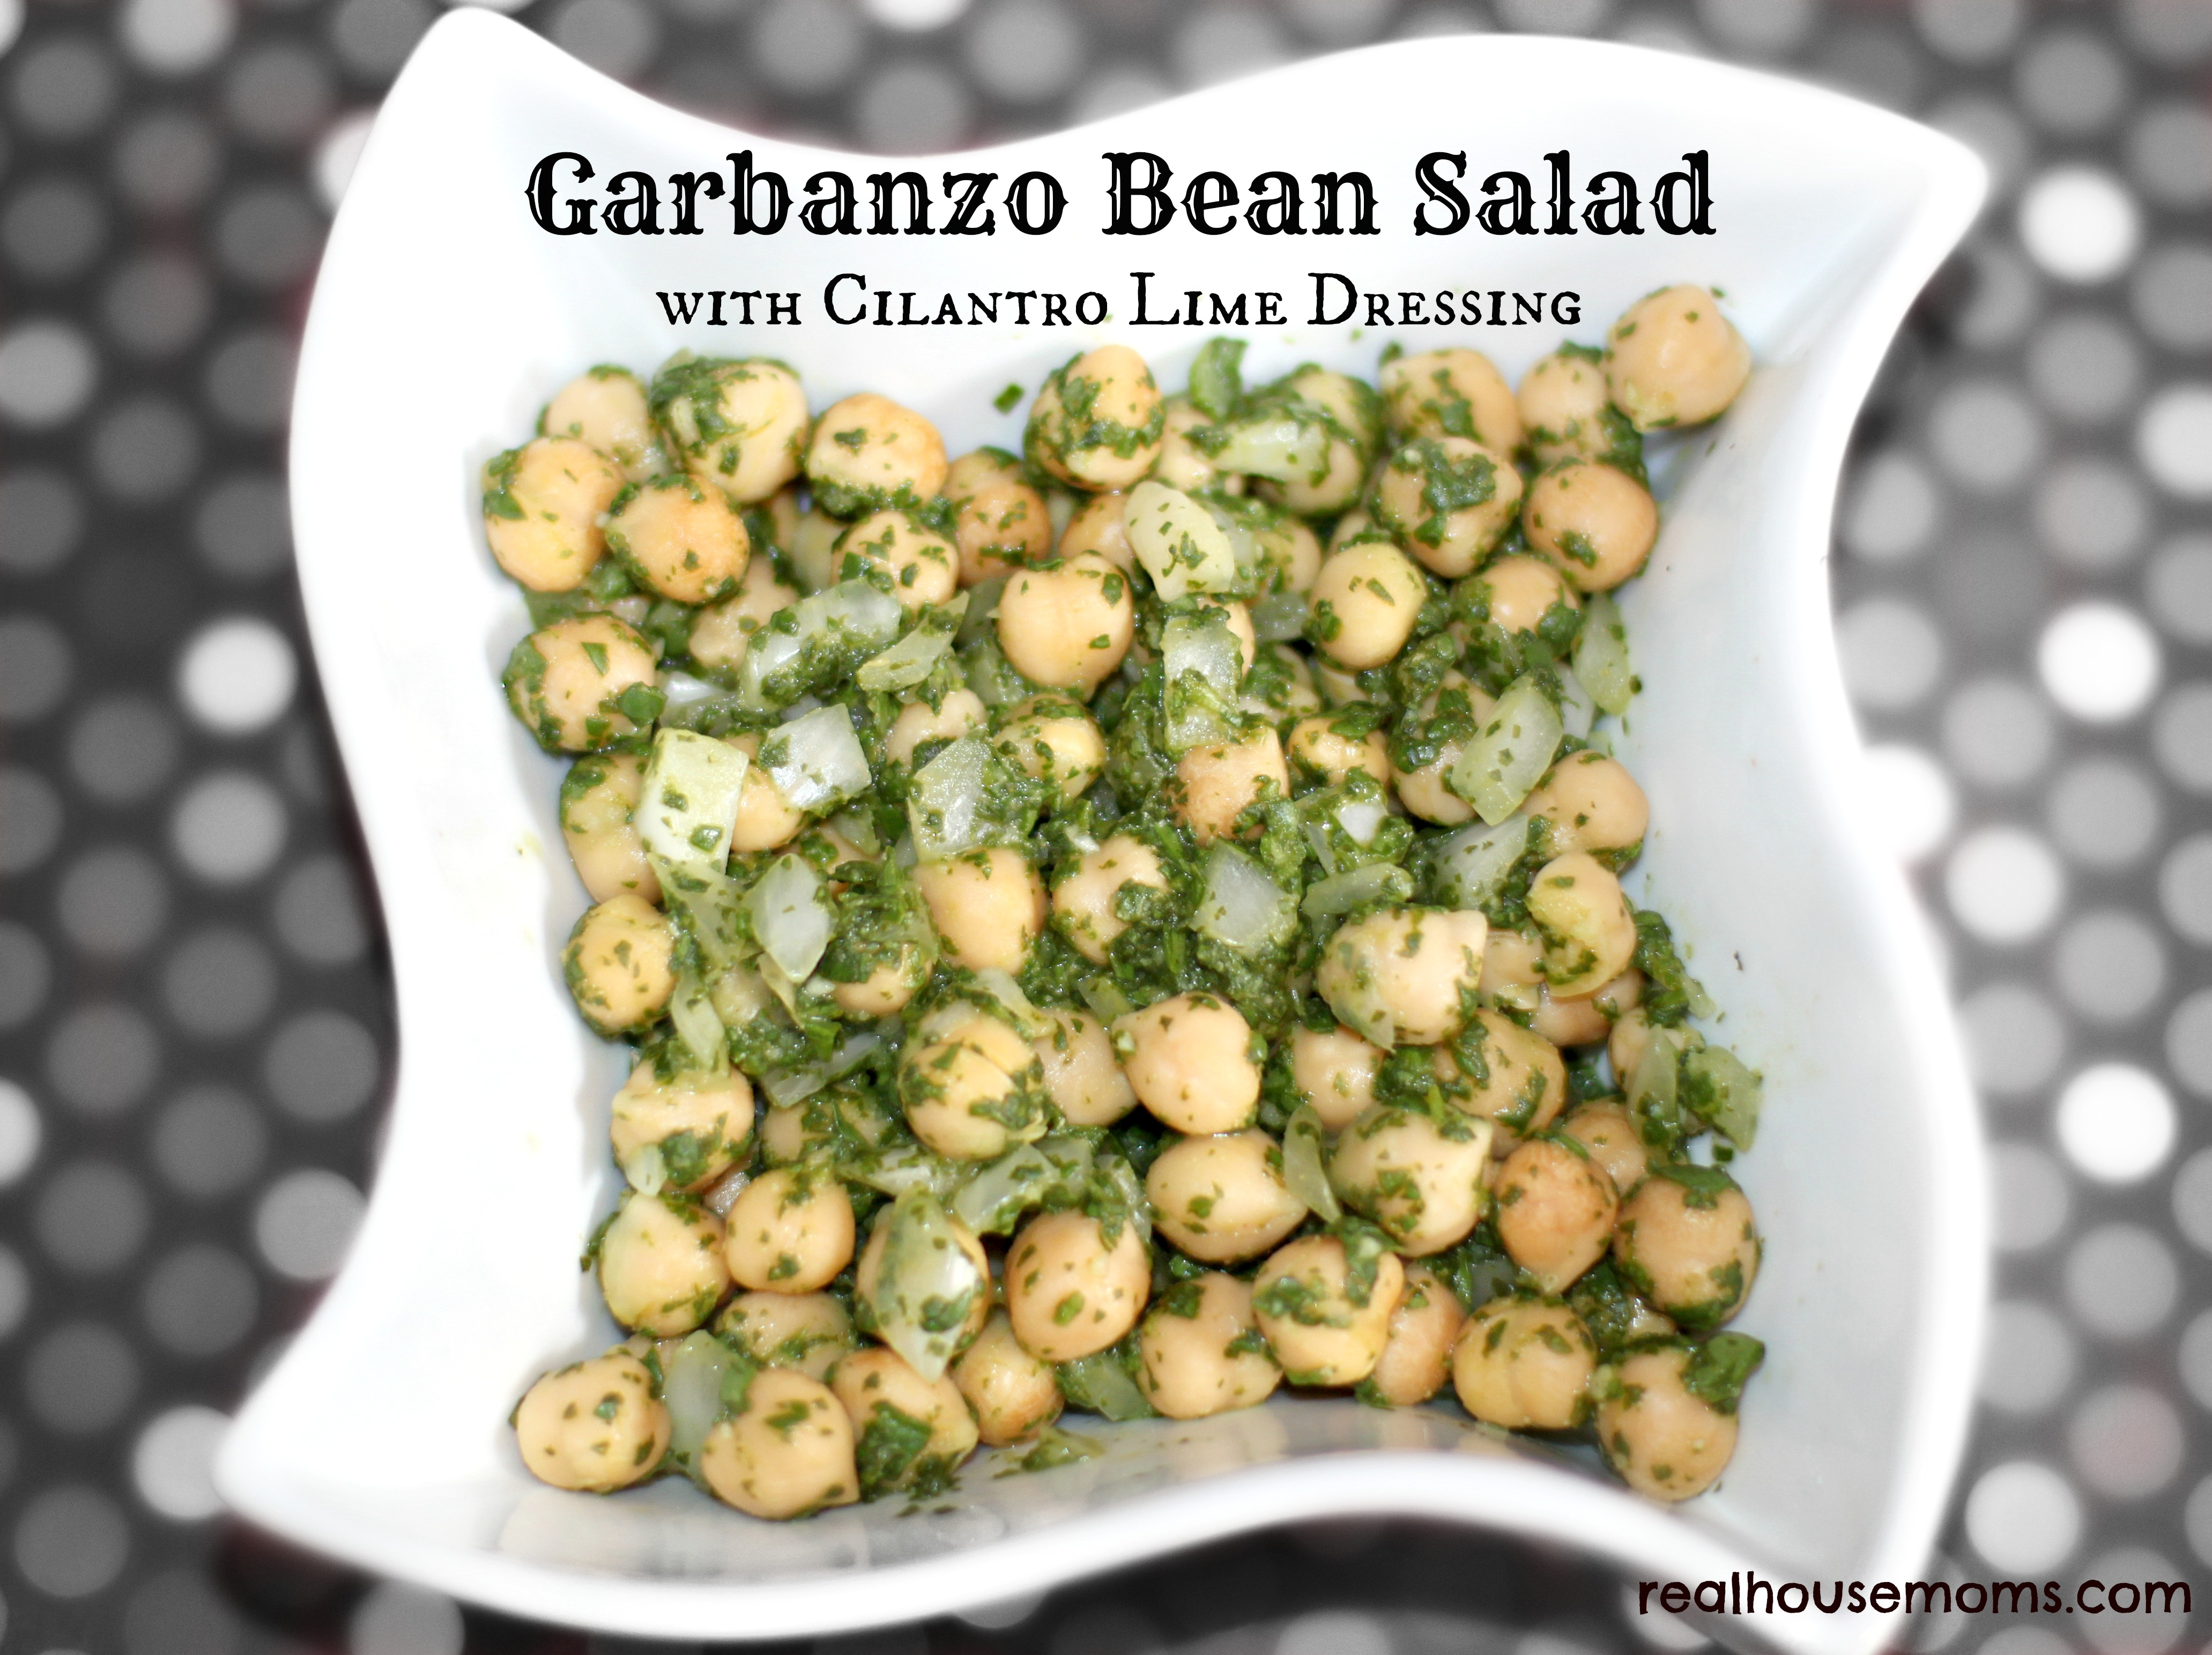 Garbanzo Bean Salad With Cilantro Lime Dressing